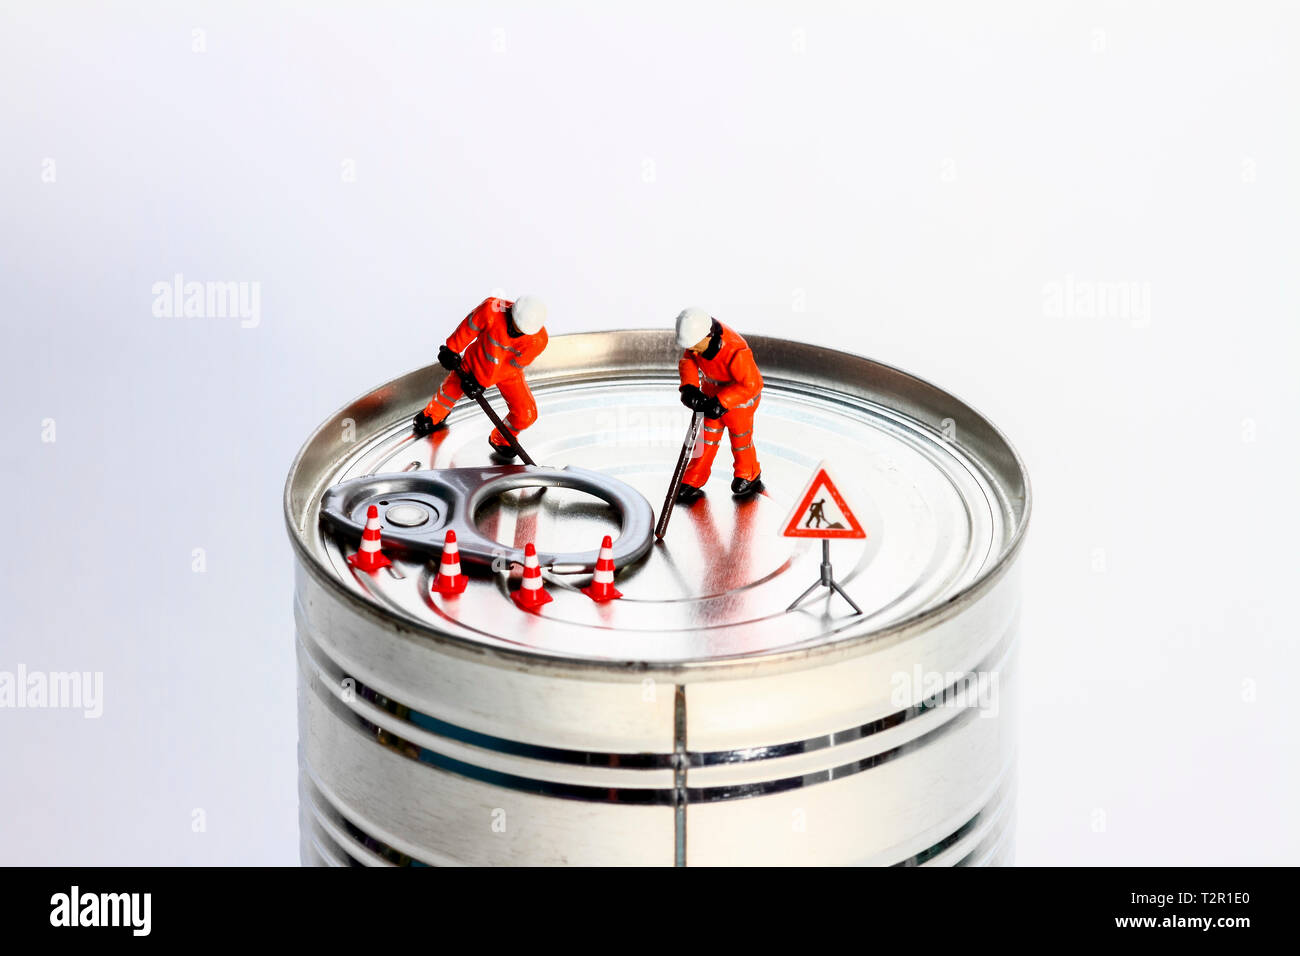 Conceptual diorama image of miniature figures trying to prise open a tin can - Stock Image